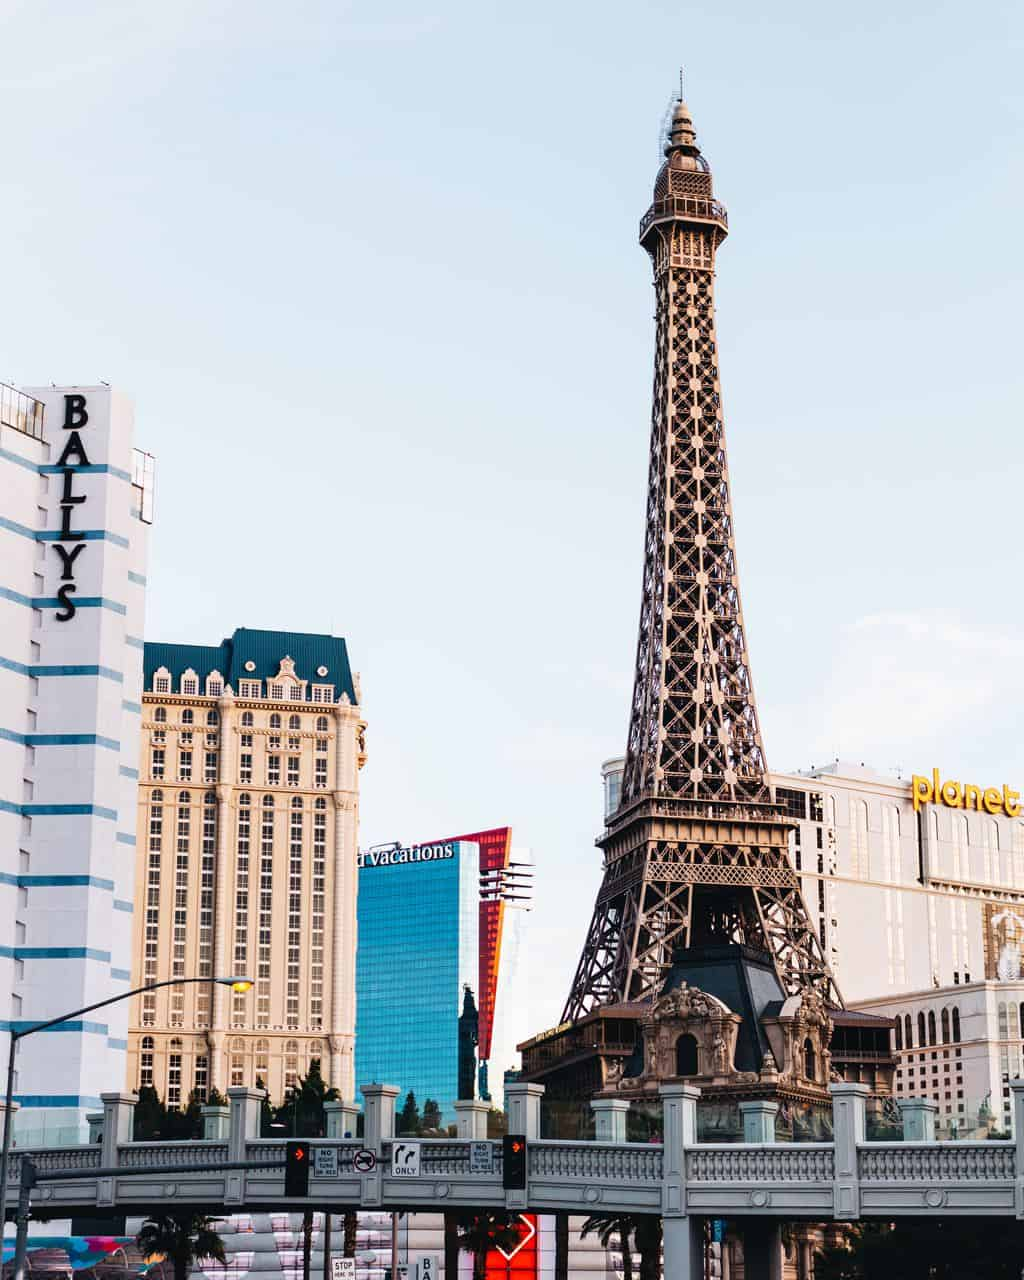 Las Vegas can be family friendly with these tips!